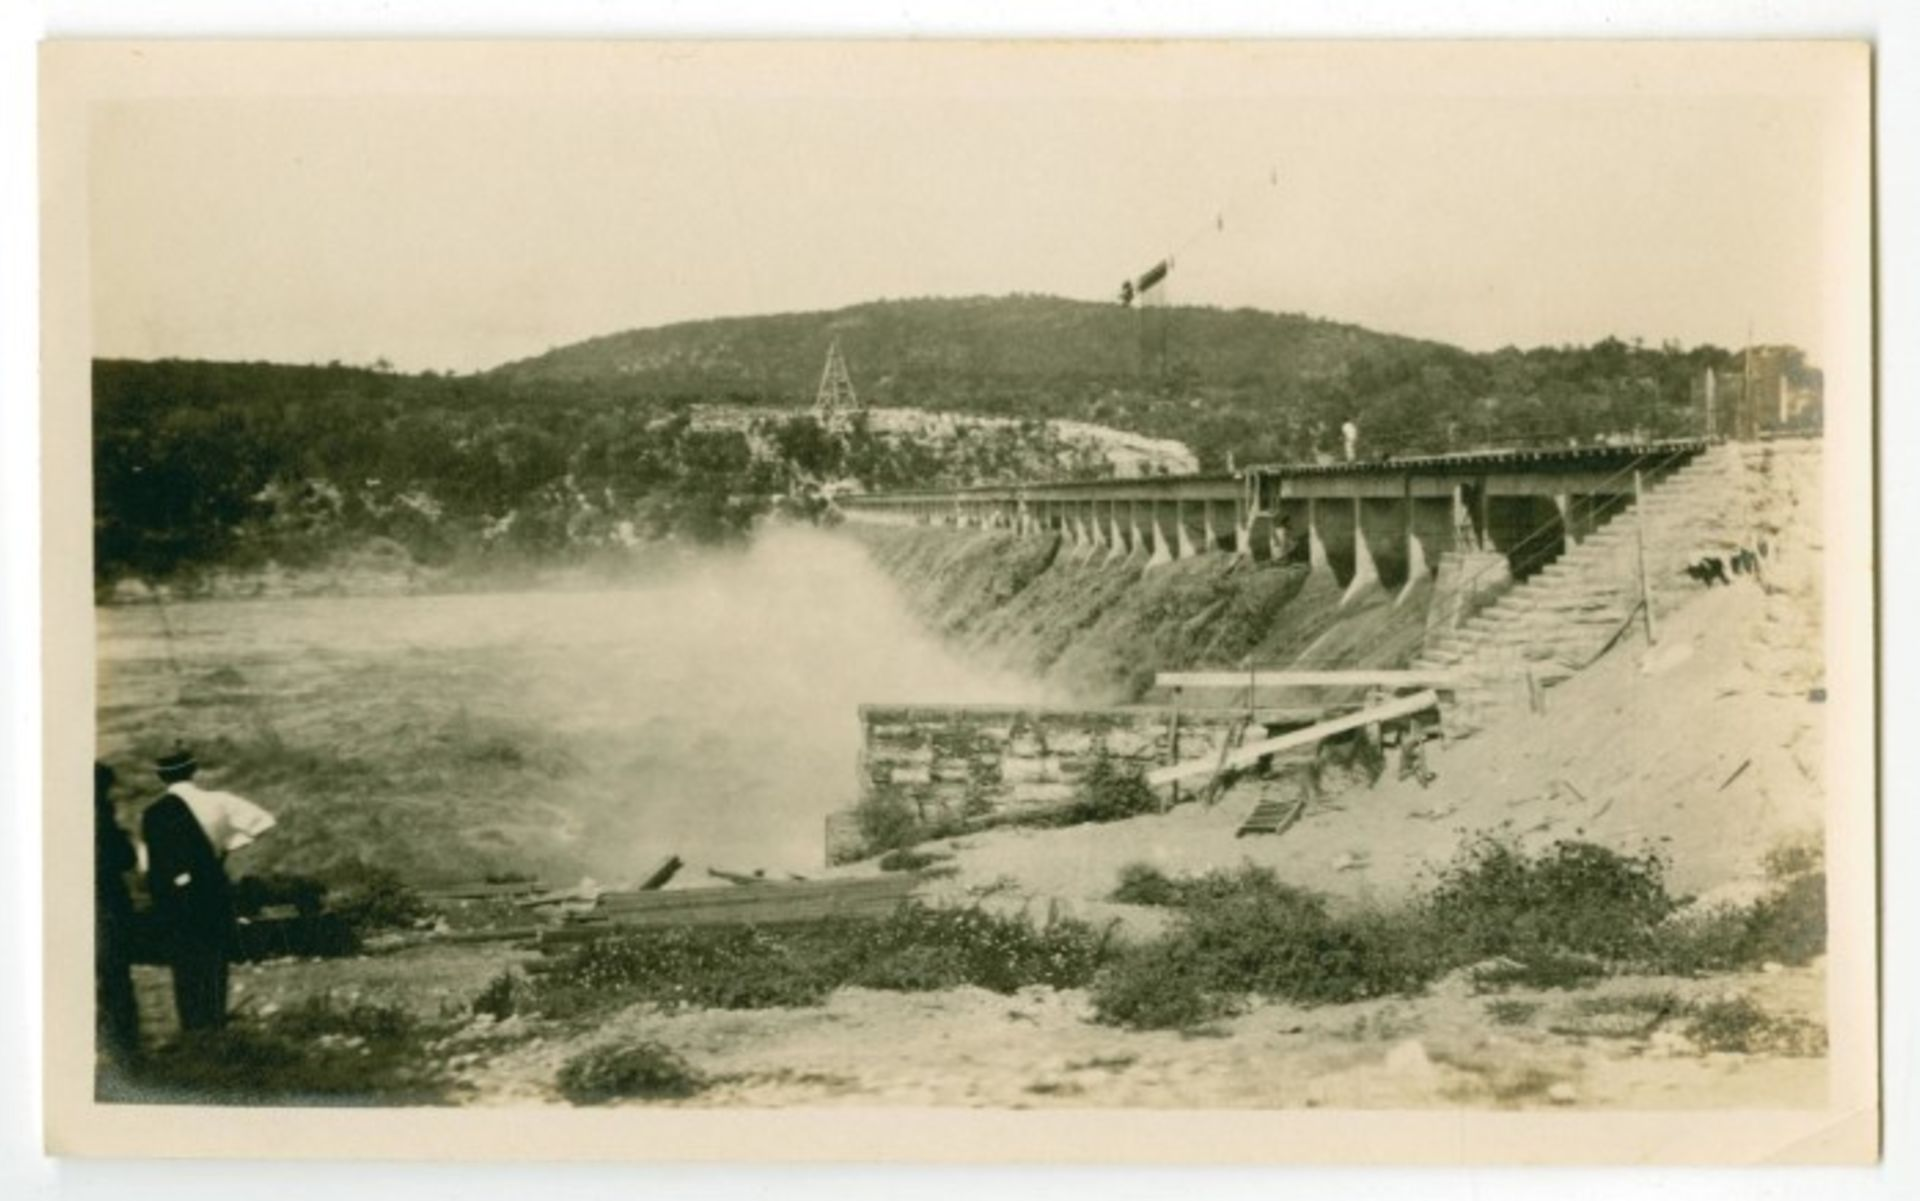 The legacy of our local dams: How an electrified early Austin helped shaped our lives today